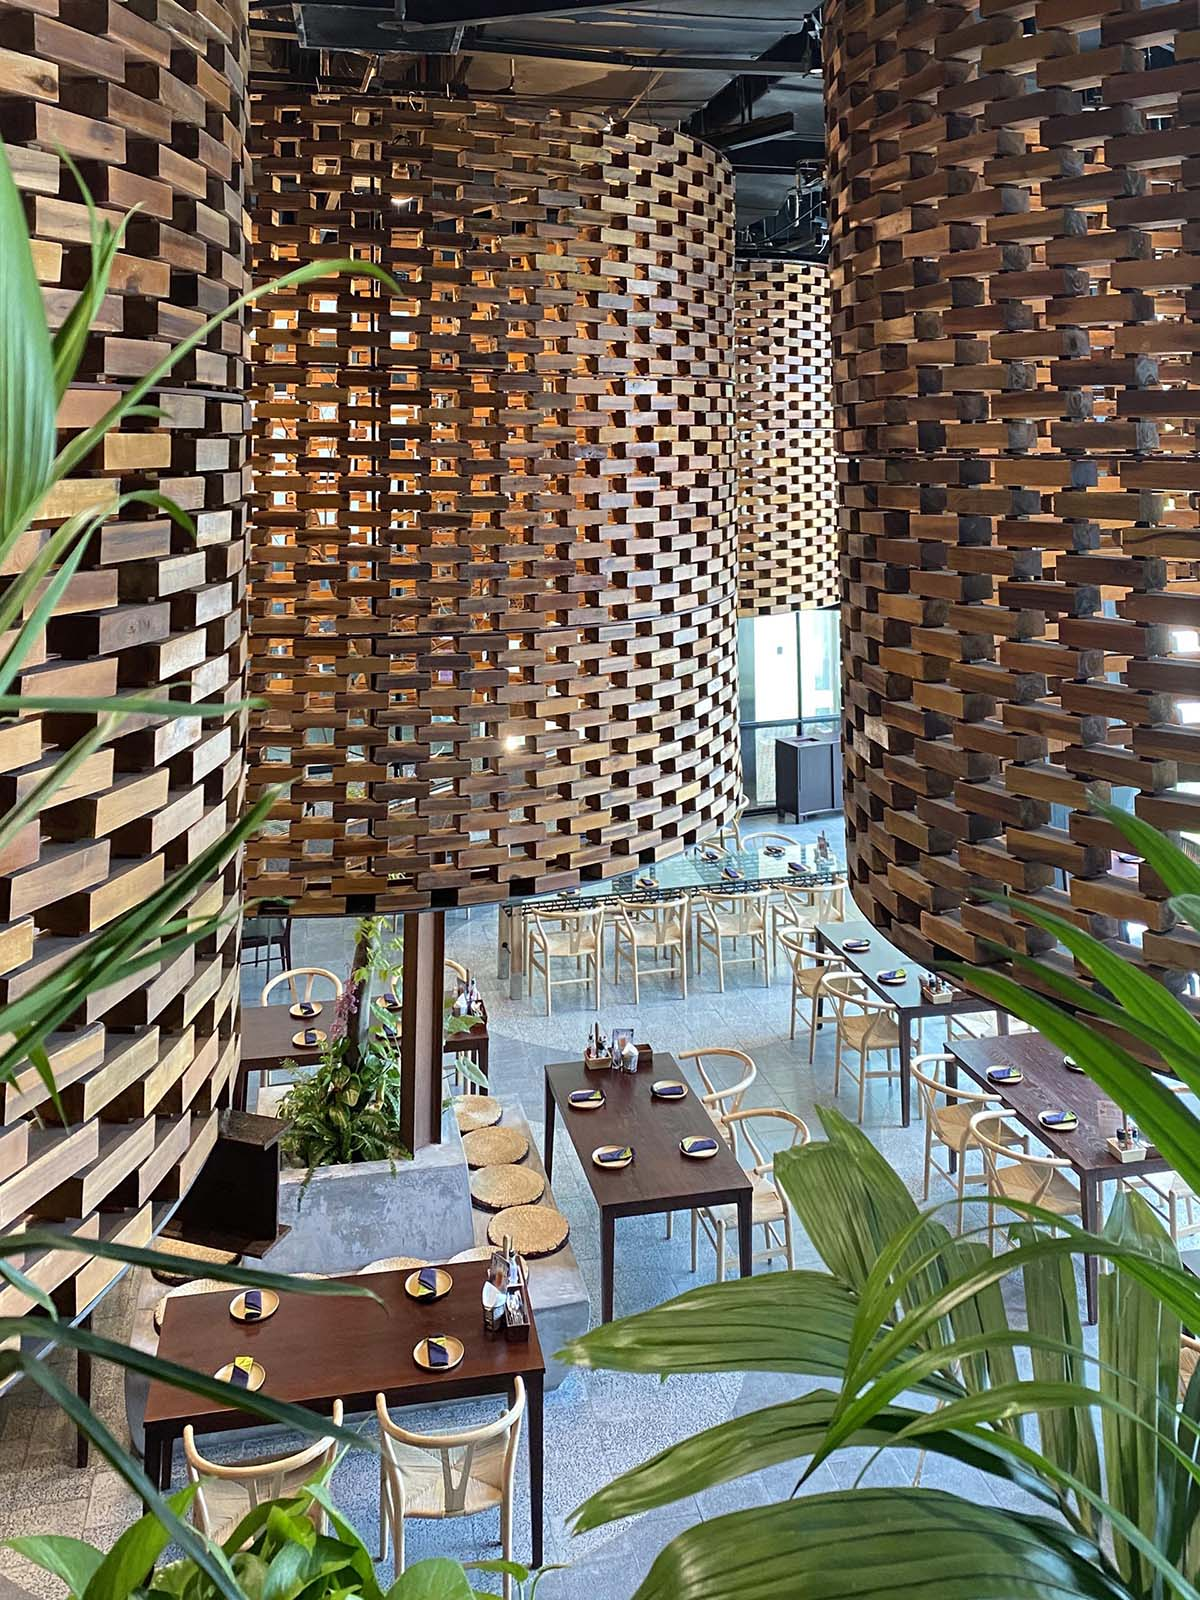 A modern restaurant interior design with large sculptural cylinders made from wood bricks, and contemporary wood furniture.